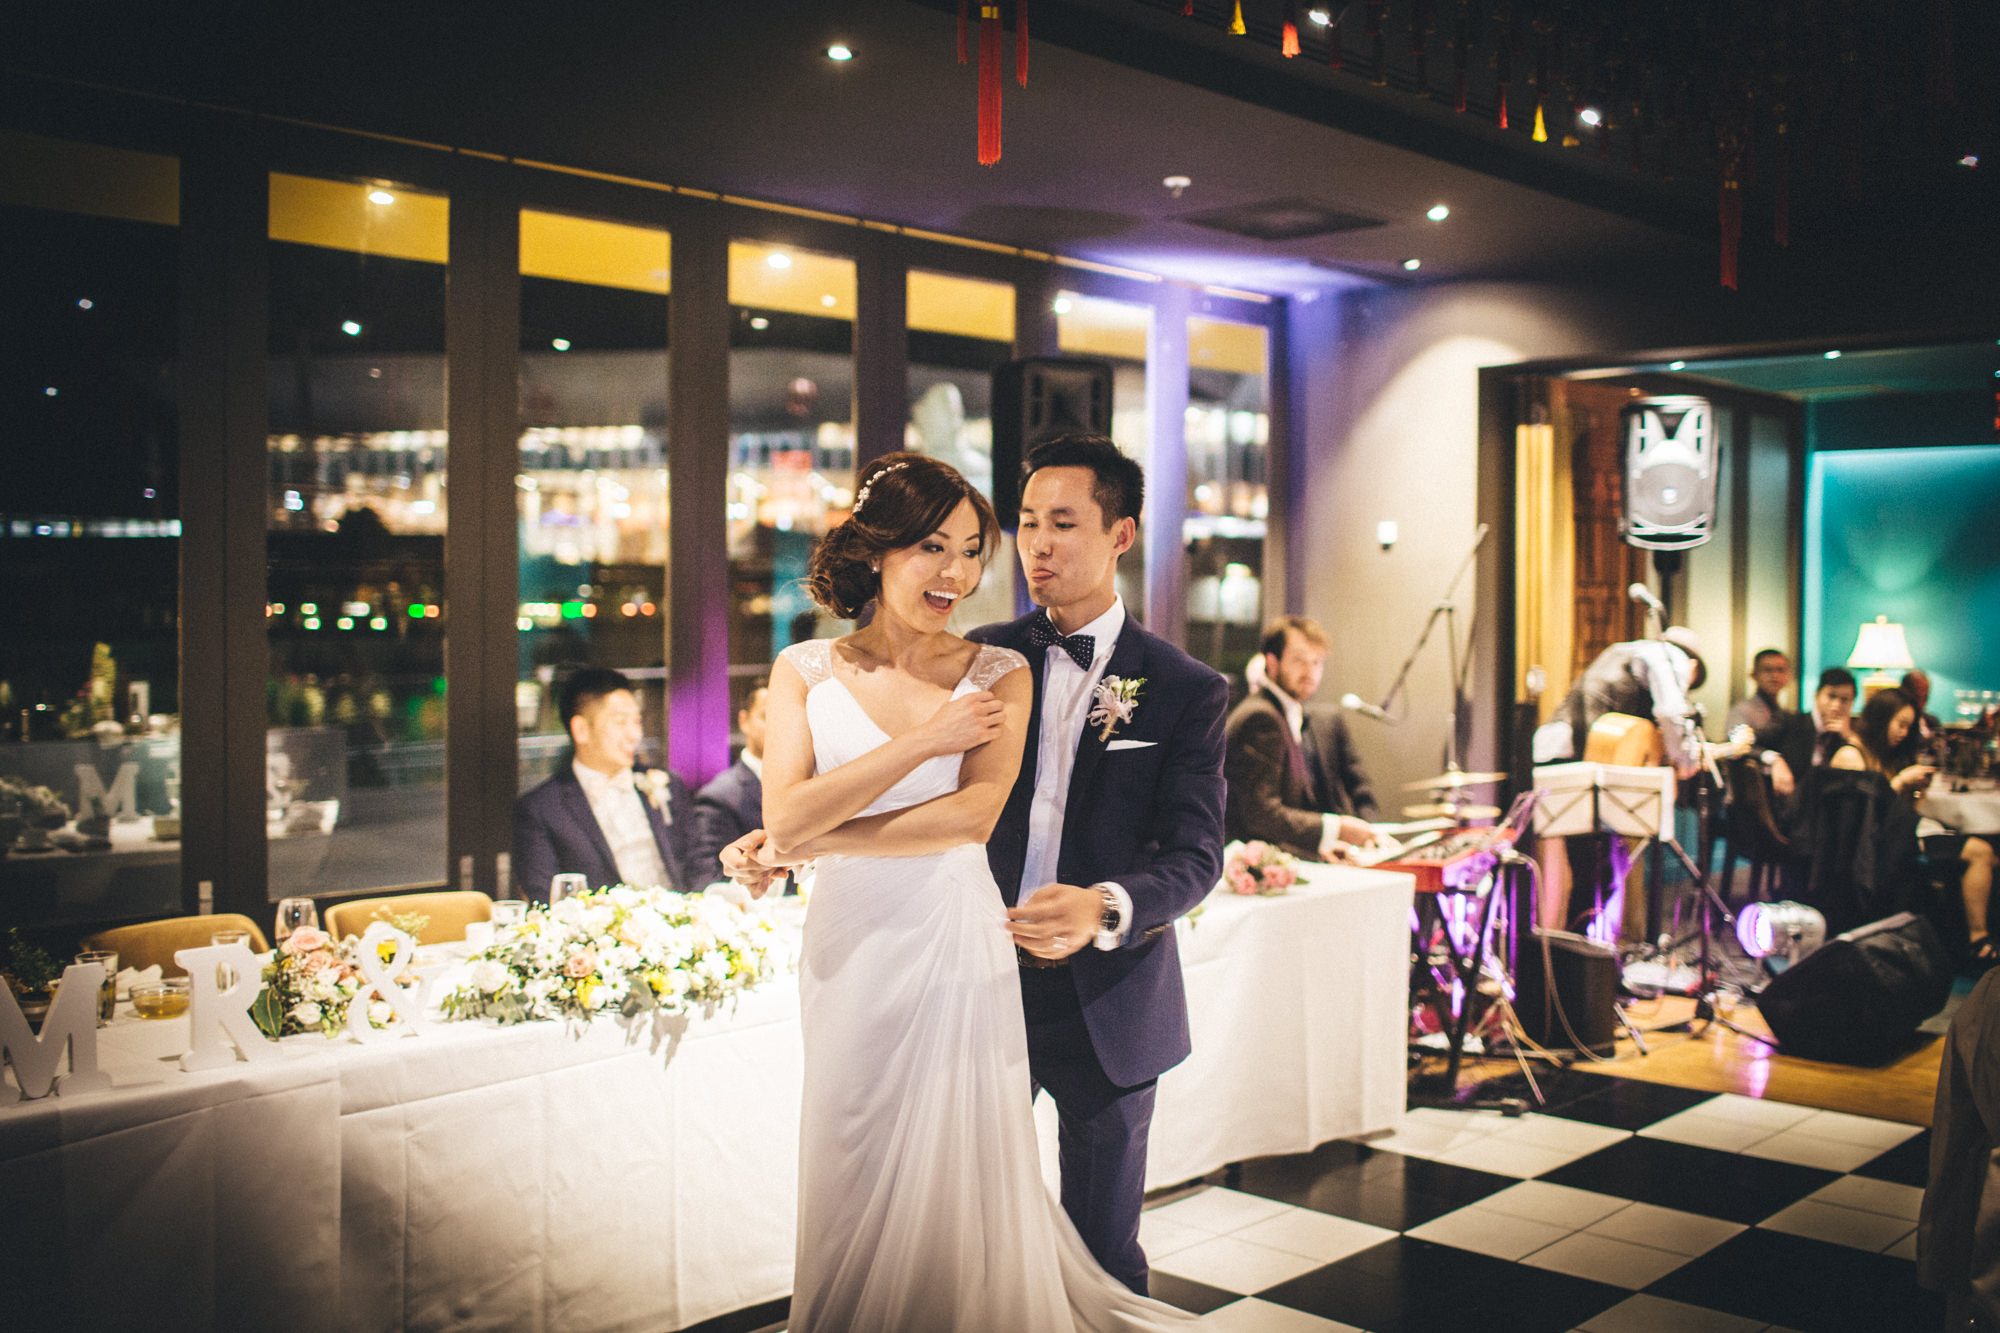 Allee & Rob - Singapore Wedding Photography (58 of 60).jpg